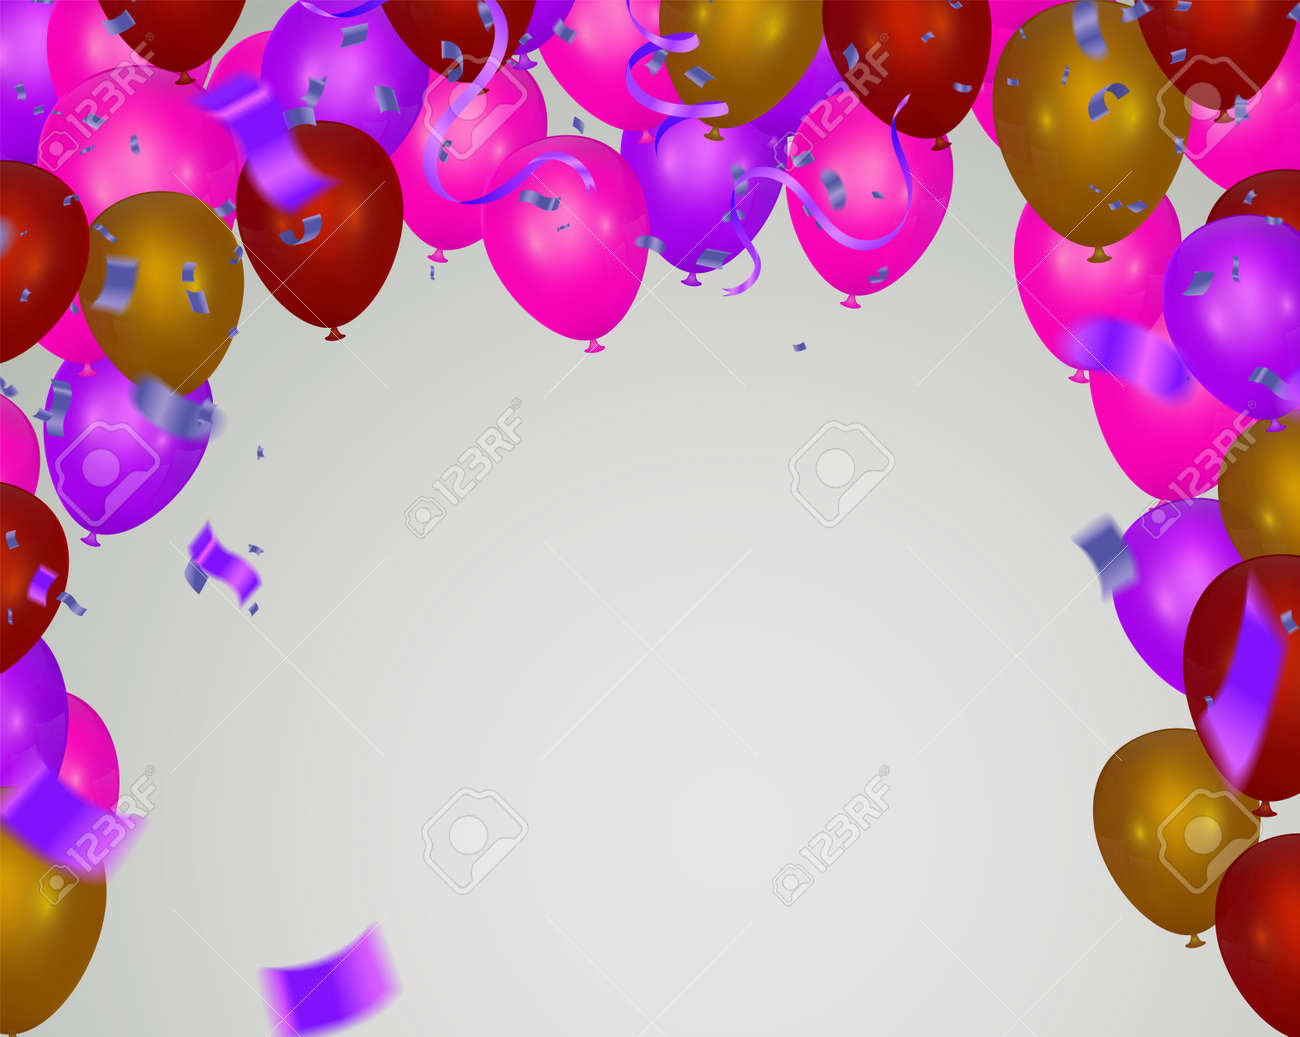 Pink light balloons and colorful balloons on the background. - 134584822